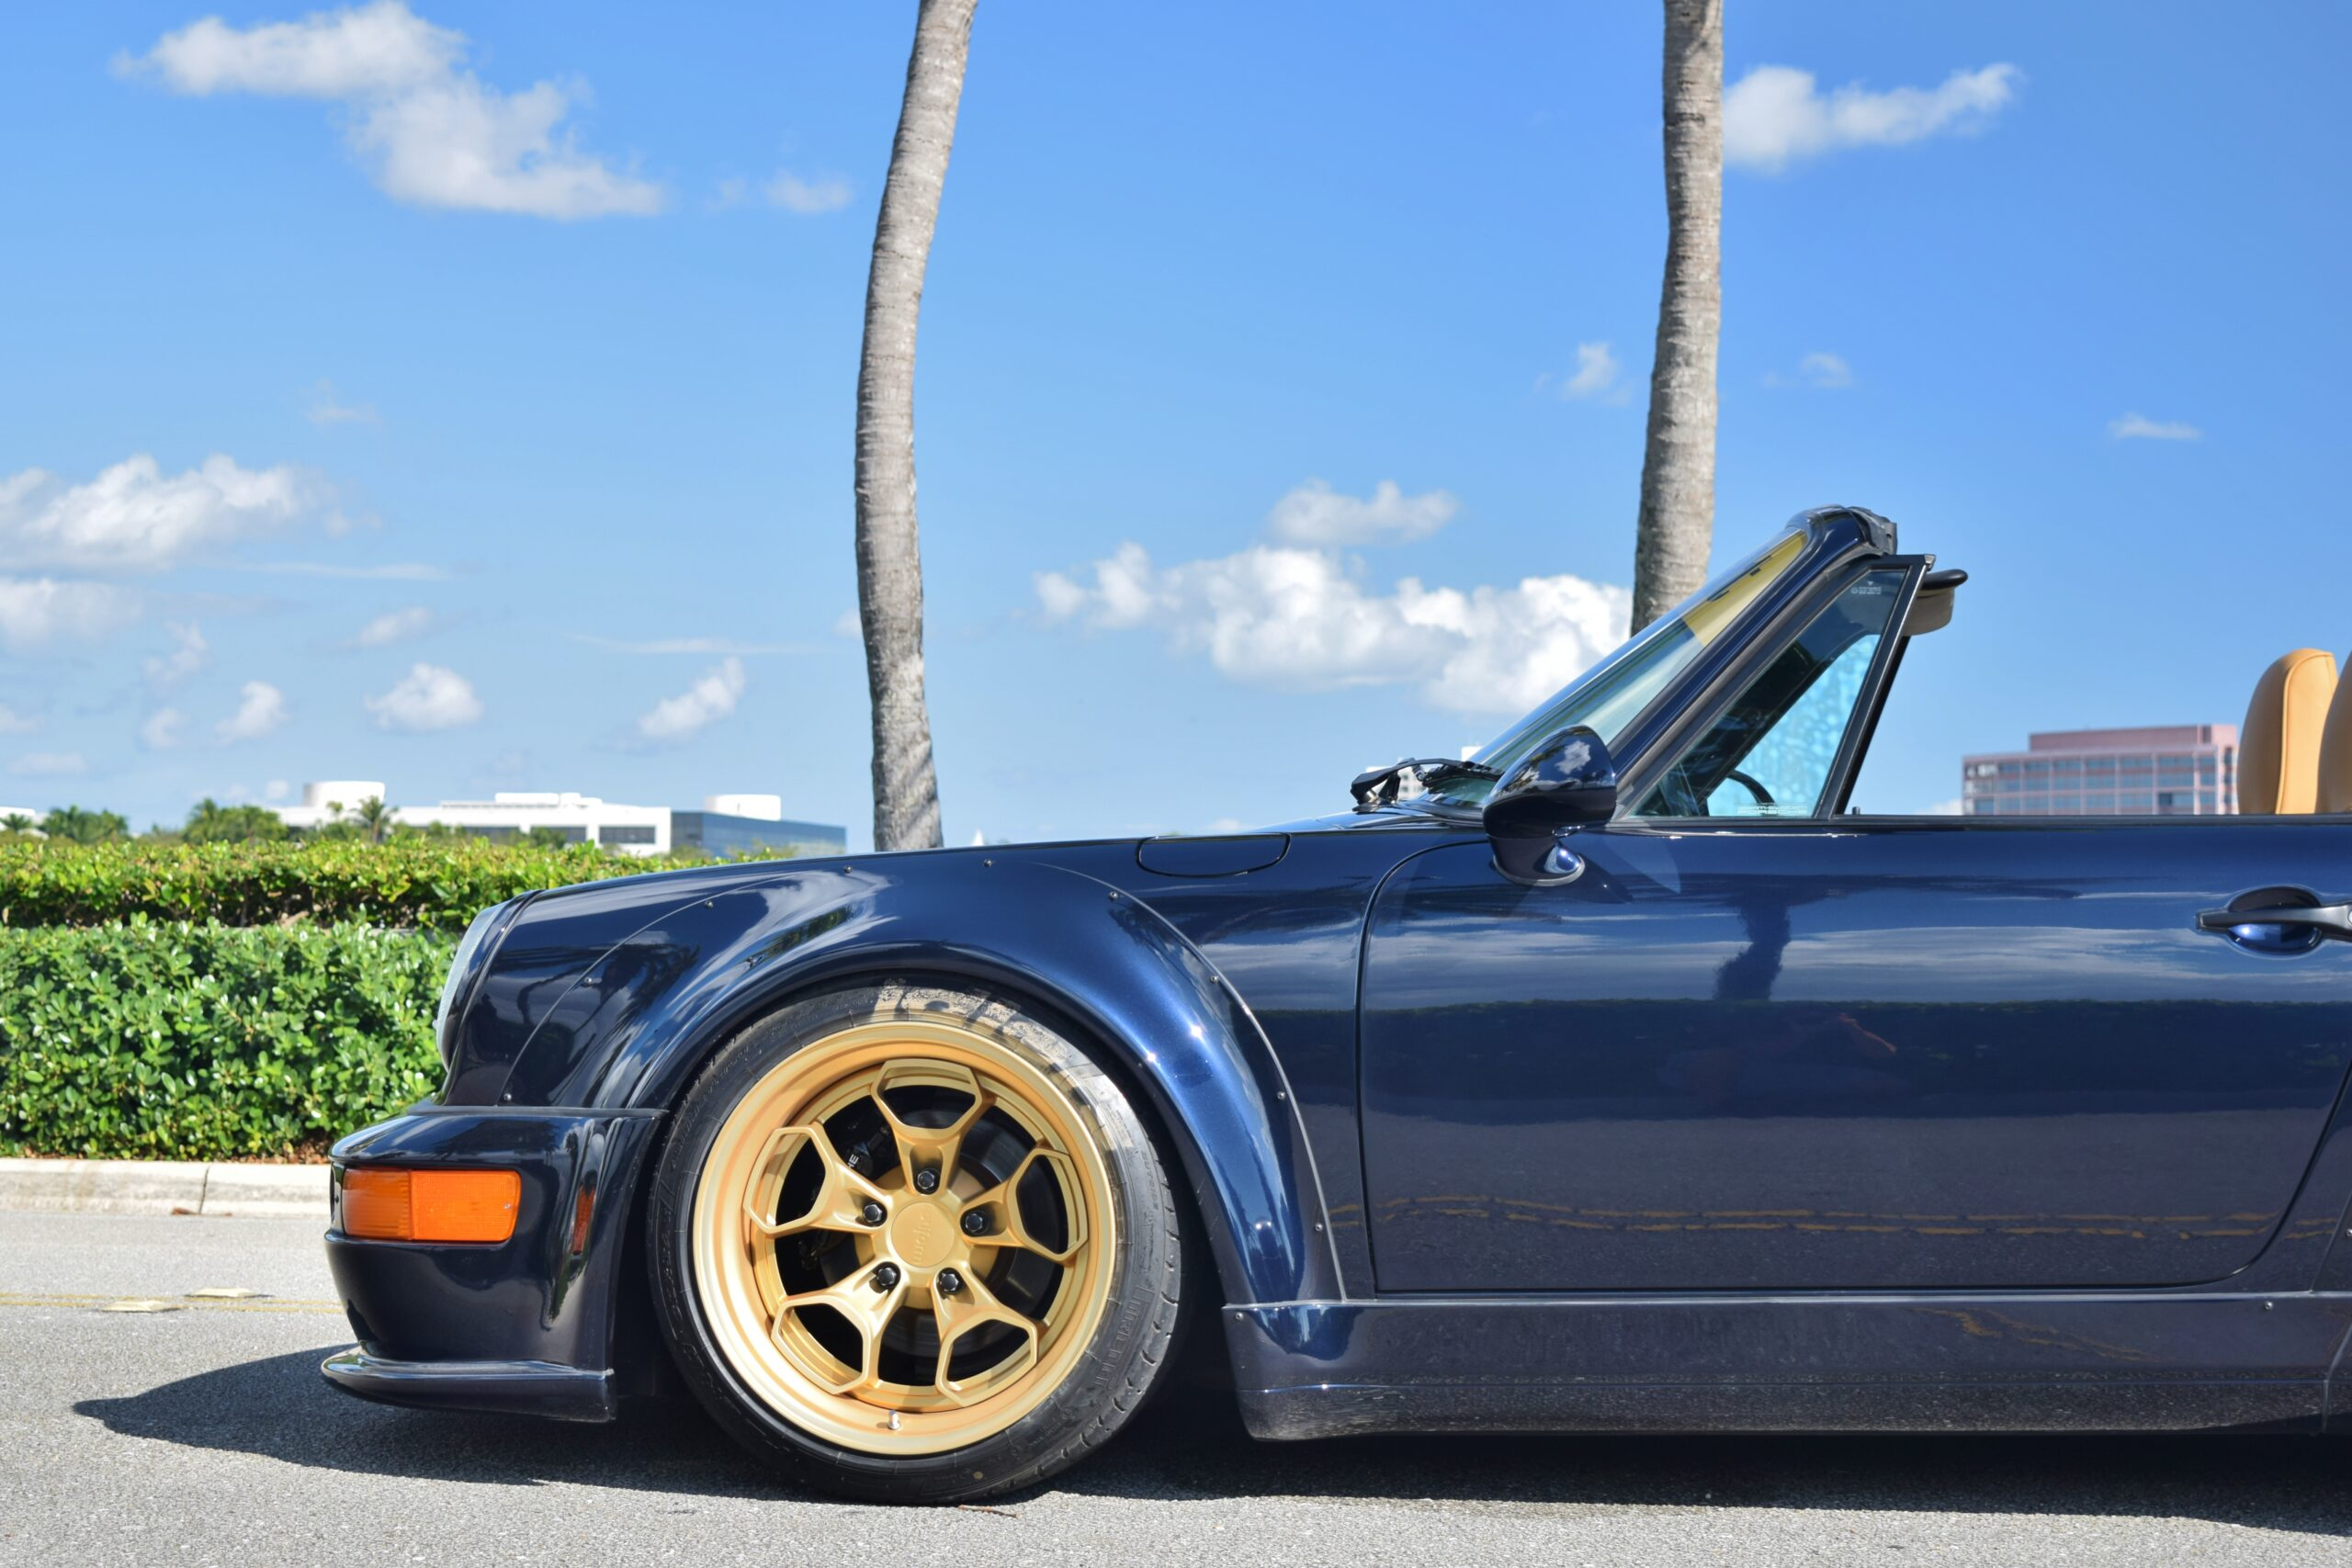 1993 Porsche 911/ RWB Europe 964 C4 Cabriolet Midnight Blue/ Tan 1 Owner Only 48k Miles